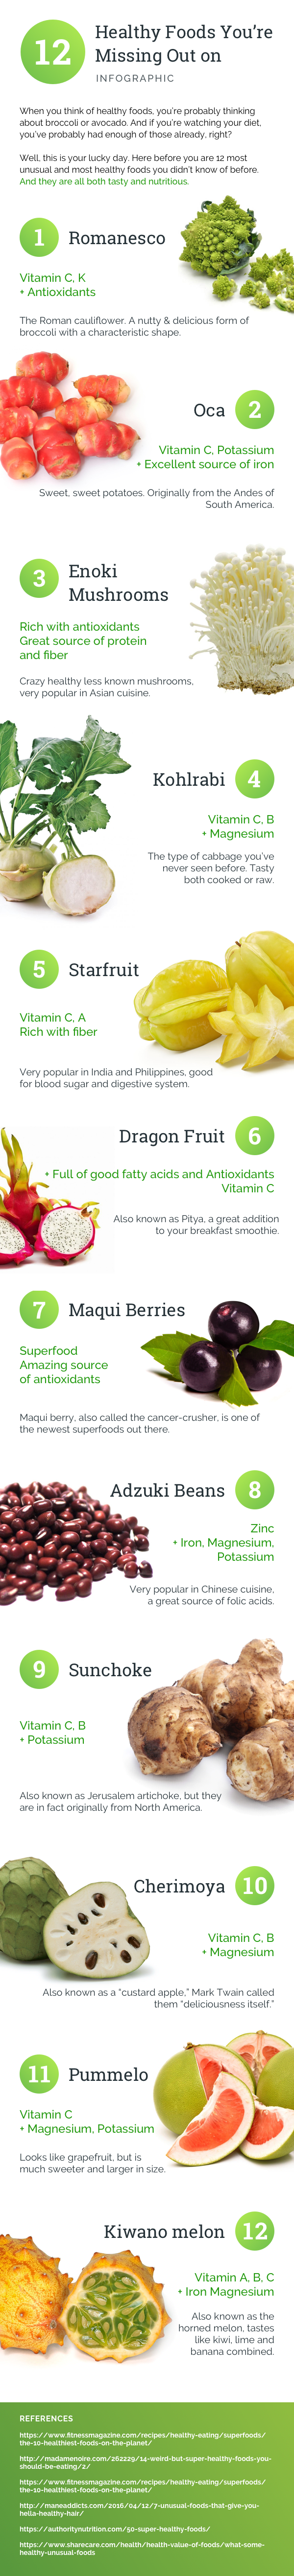 12 Healthy Foods that are Novel, Exciting and Downright Delicious! - Infographic